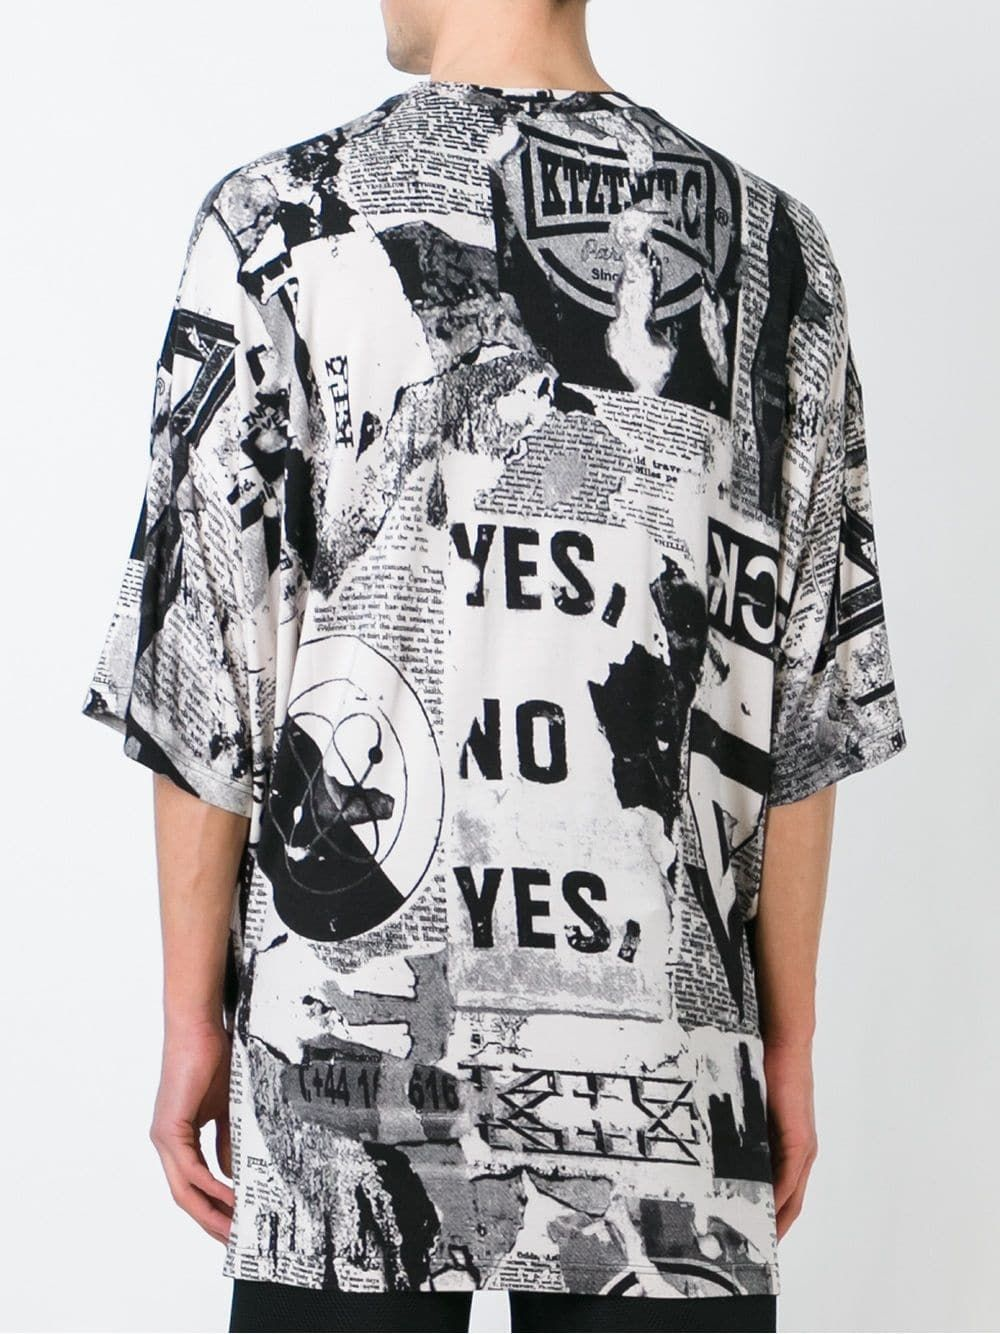 KTZ oversized newspaper print Tshirt Designer clothes